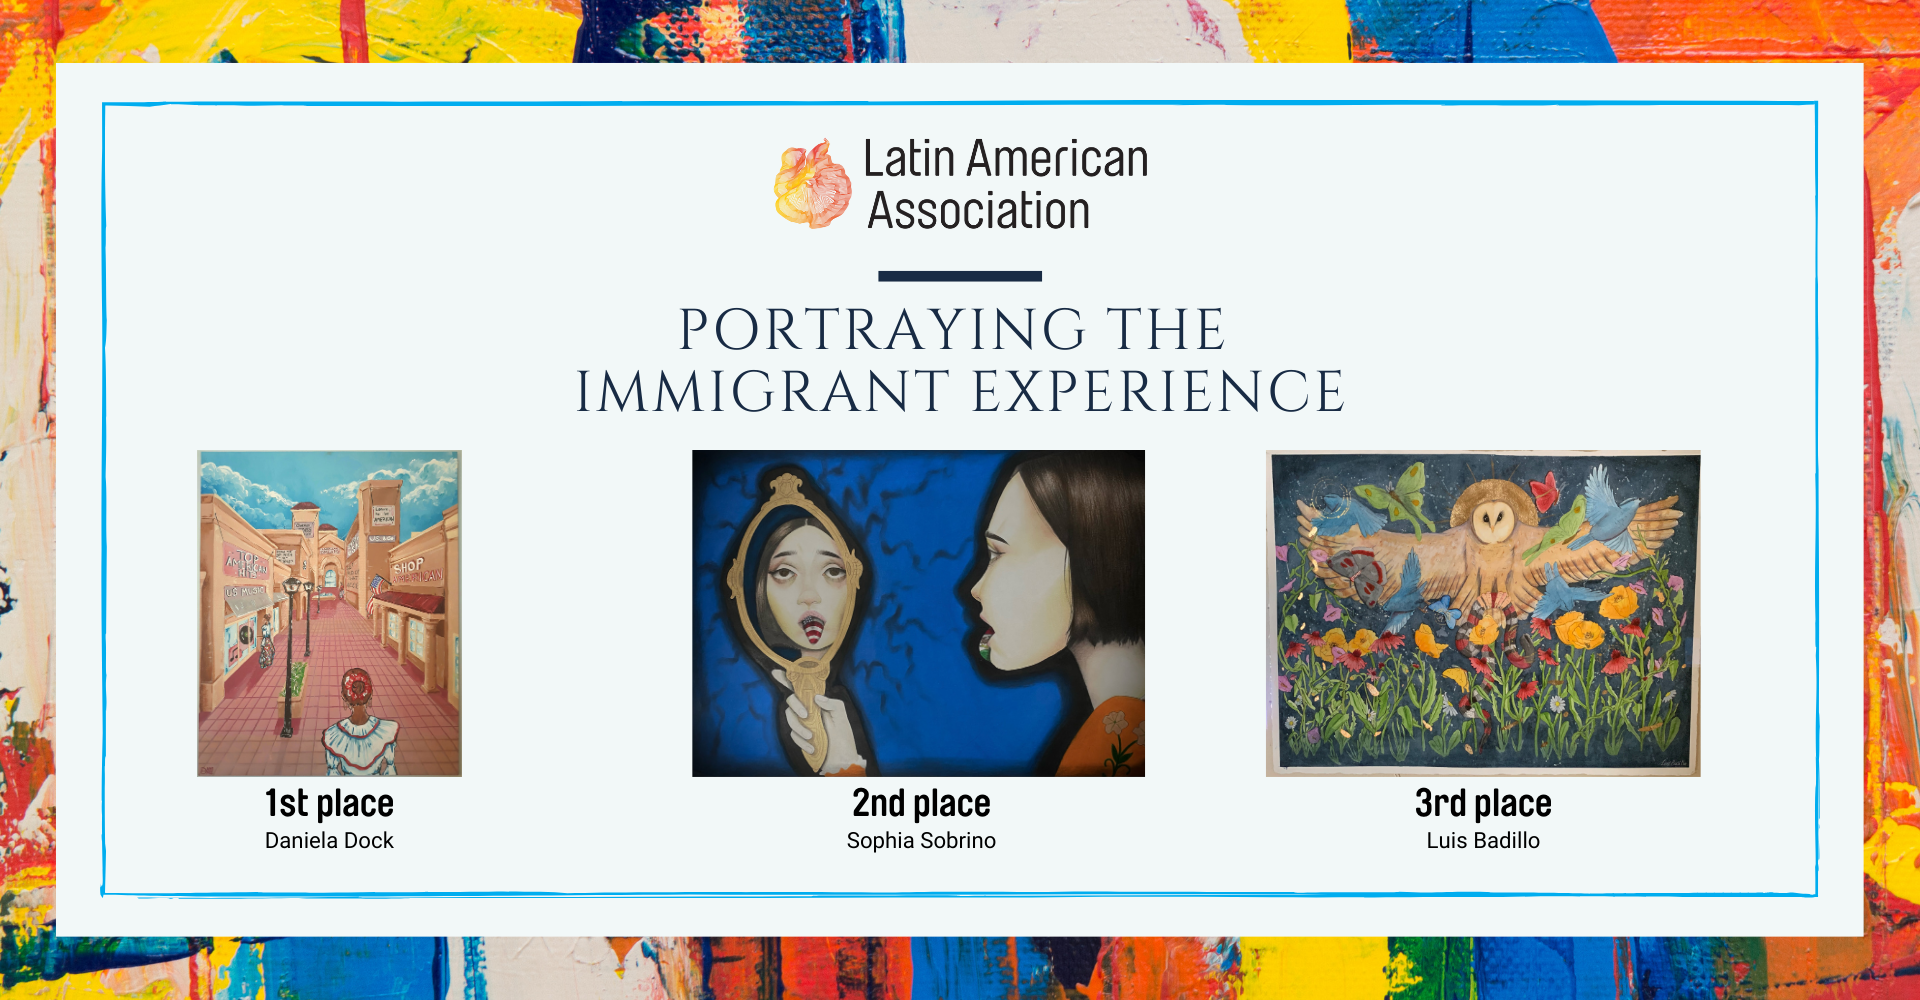 copy-of-copy-of-copy-of-portraying-the-undocumented-experience